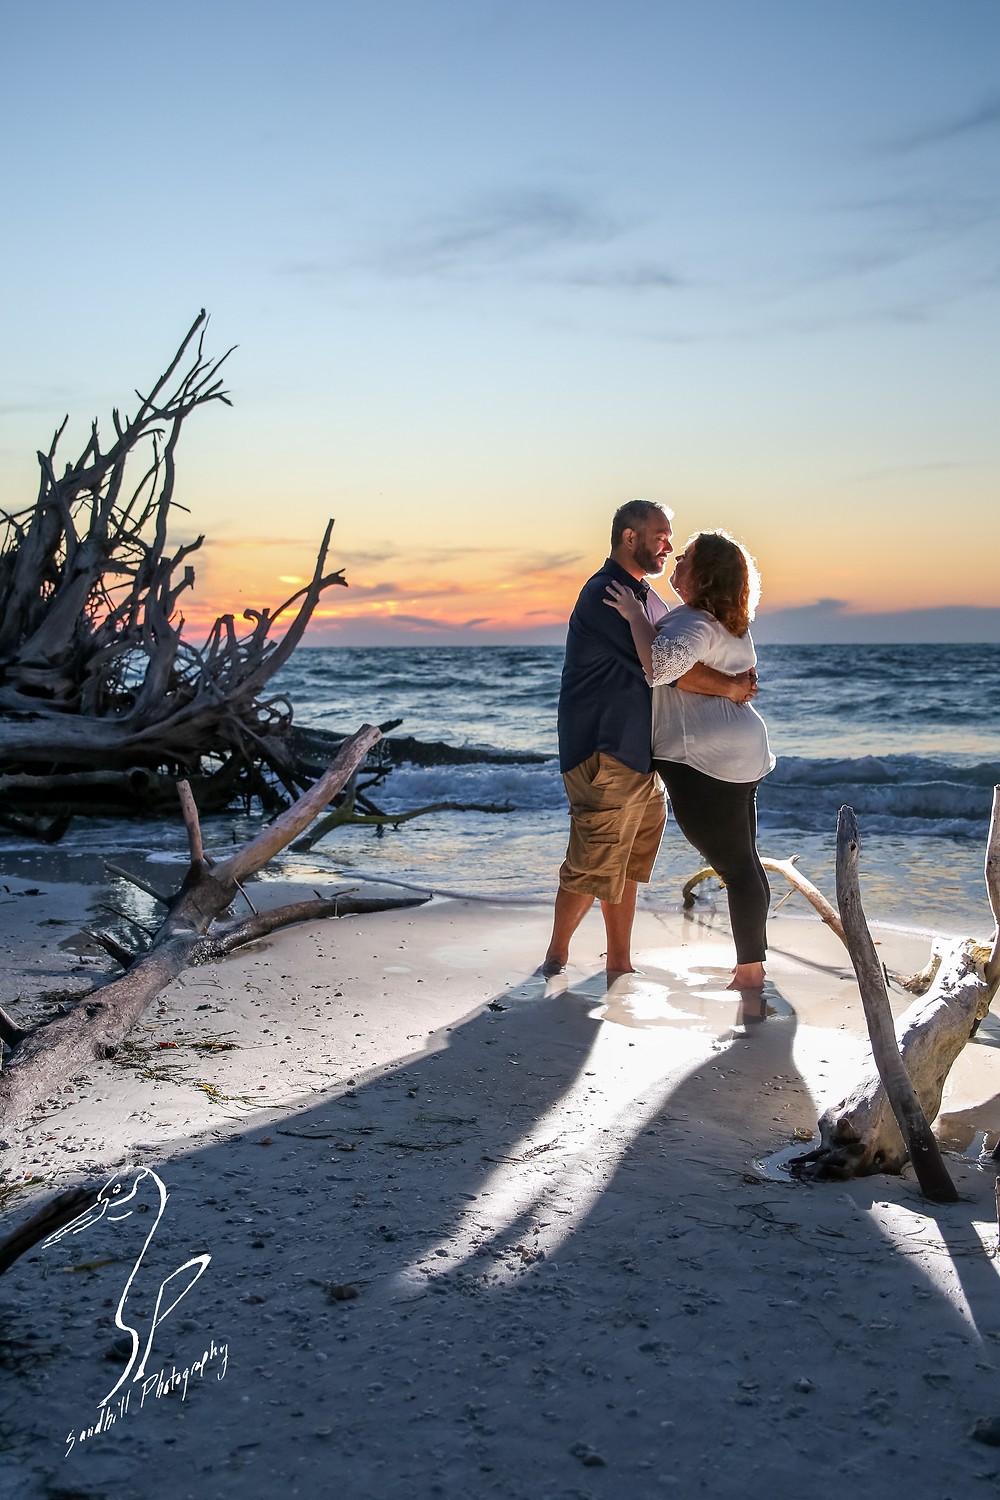 Beer Can Island Sunset Engagement Photography couple kiss drift wood dead trees sand beach ocean romantic flash backlit